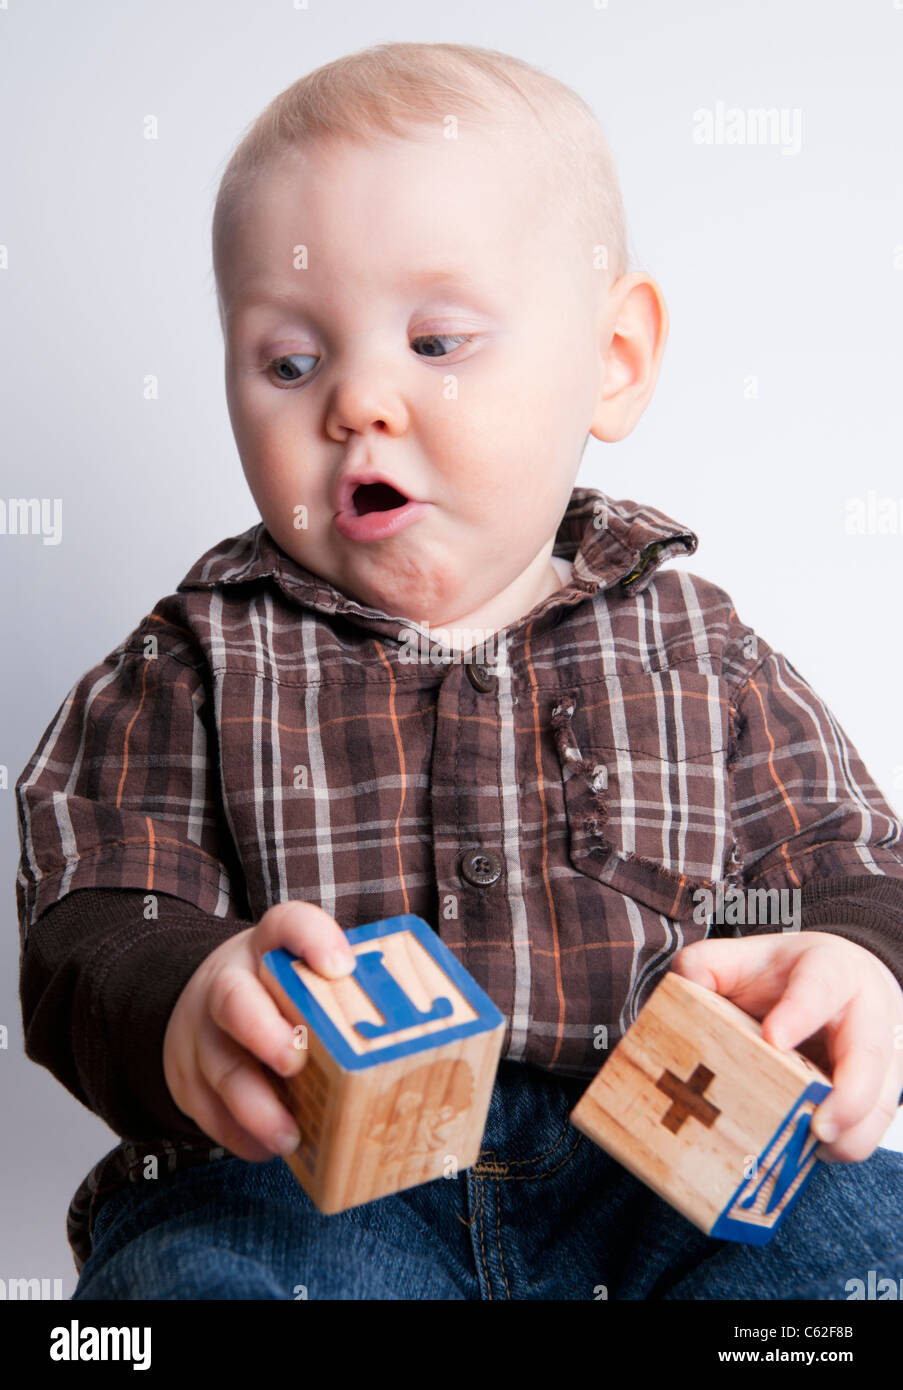 Nine month old baby boy playing with learning blocks. - Stock Image